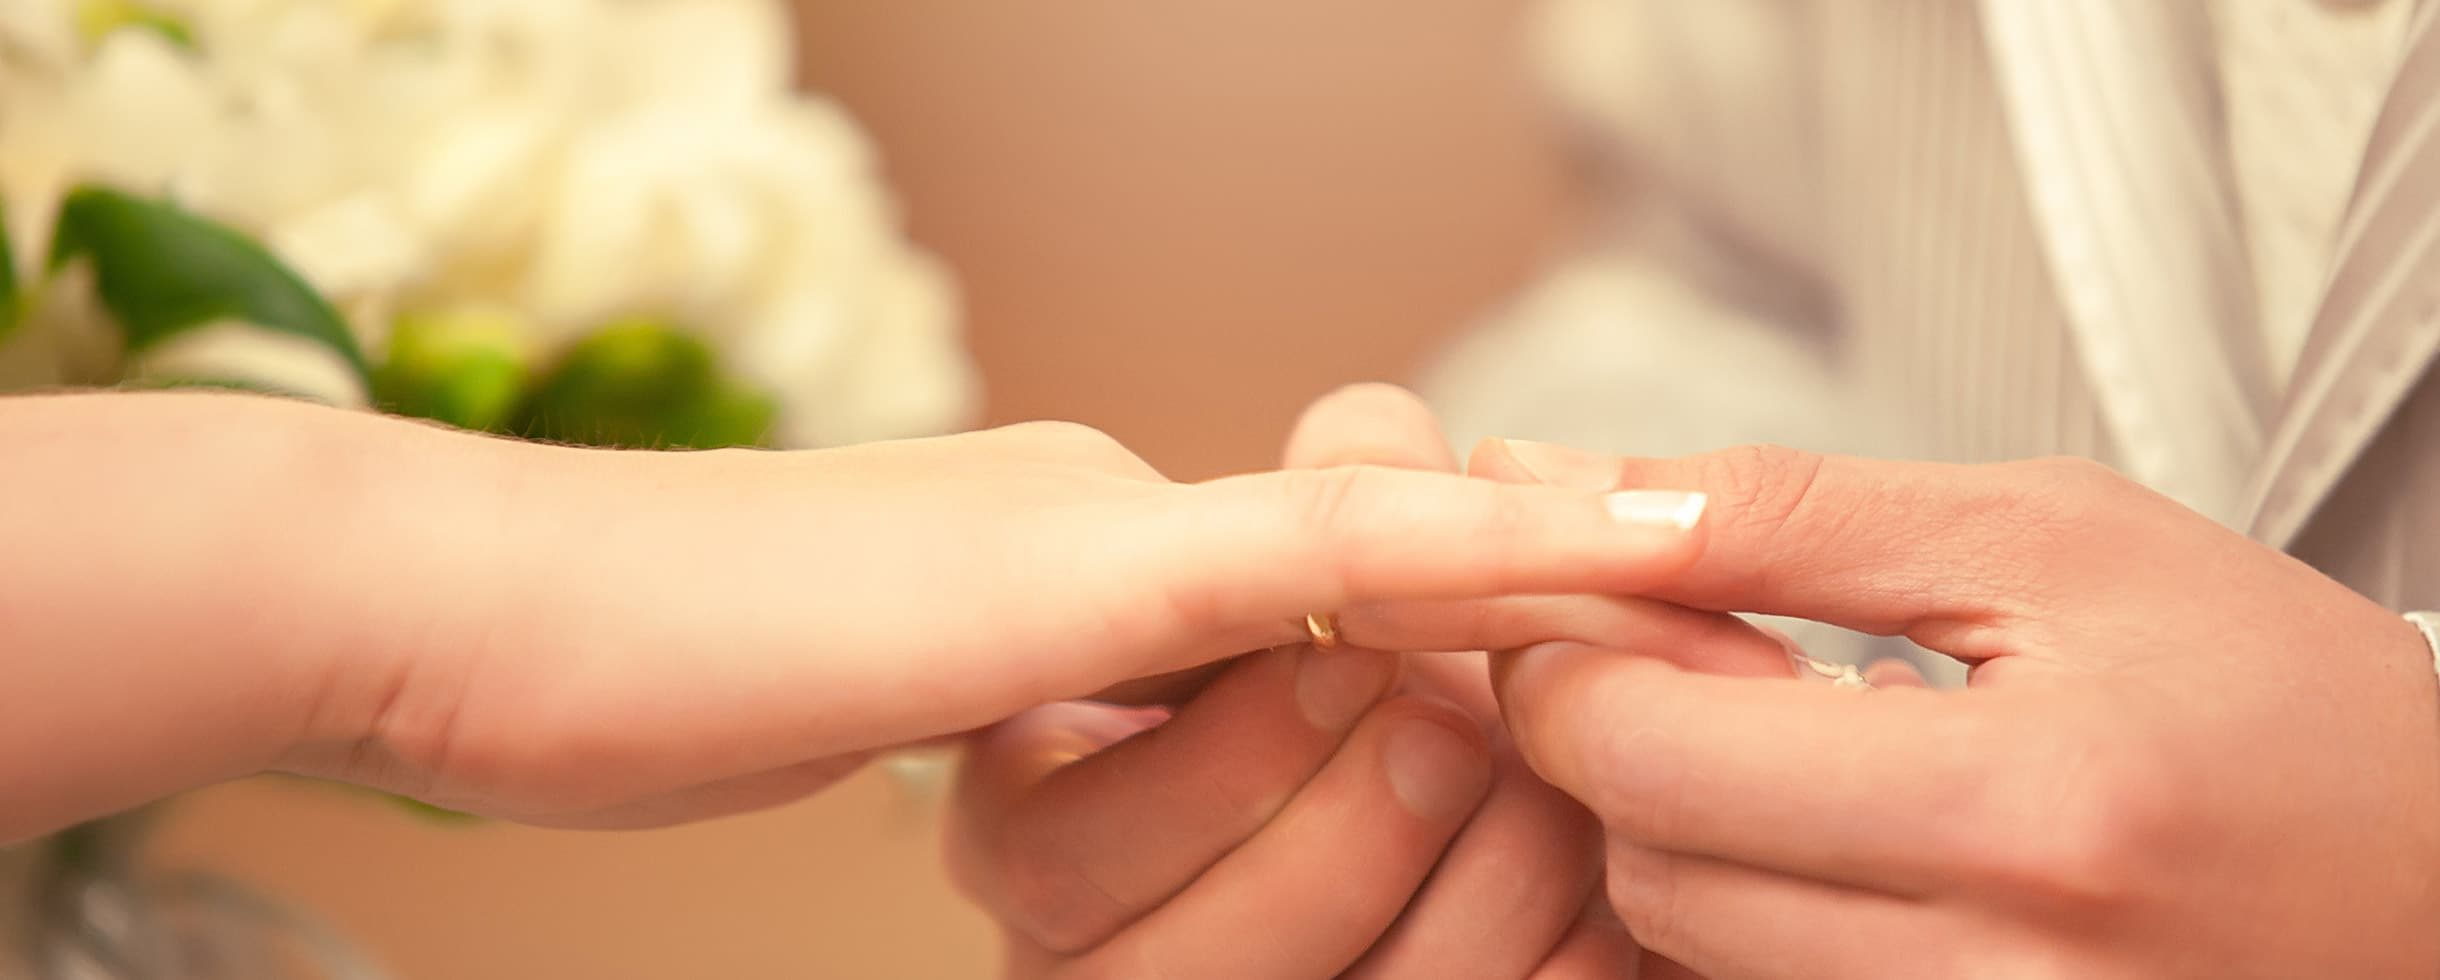 groom placing ring on bride's finger during elopement ceremony